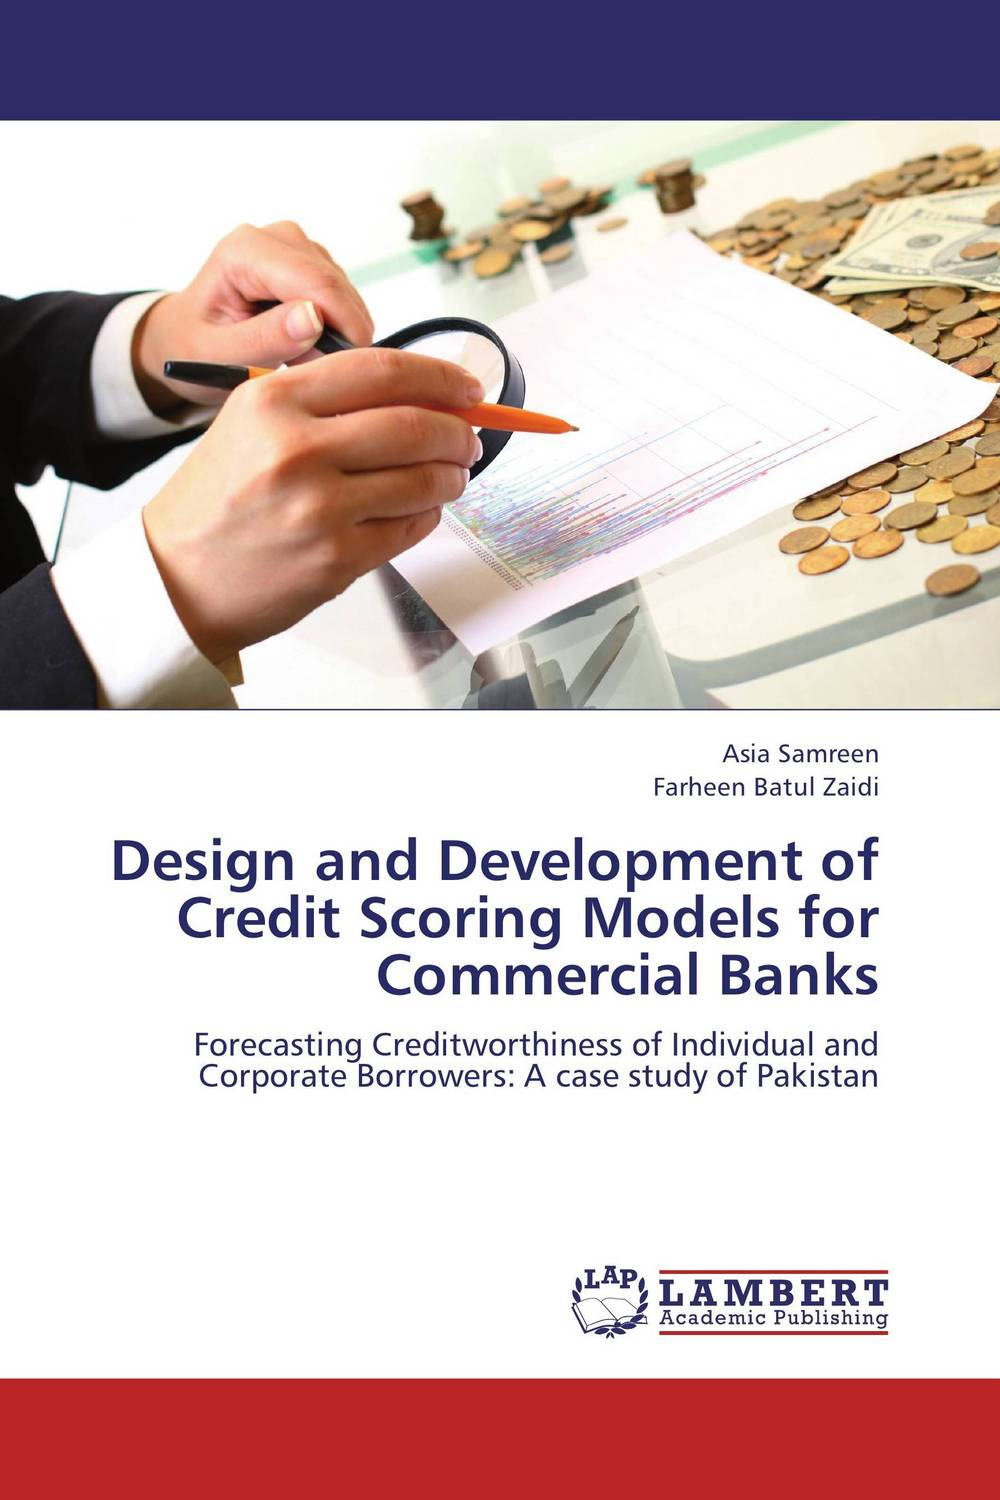 Design and Development of Credit Scoring Models for Commercial Banks